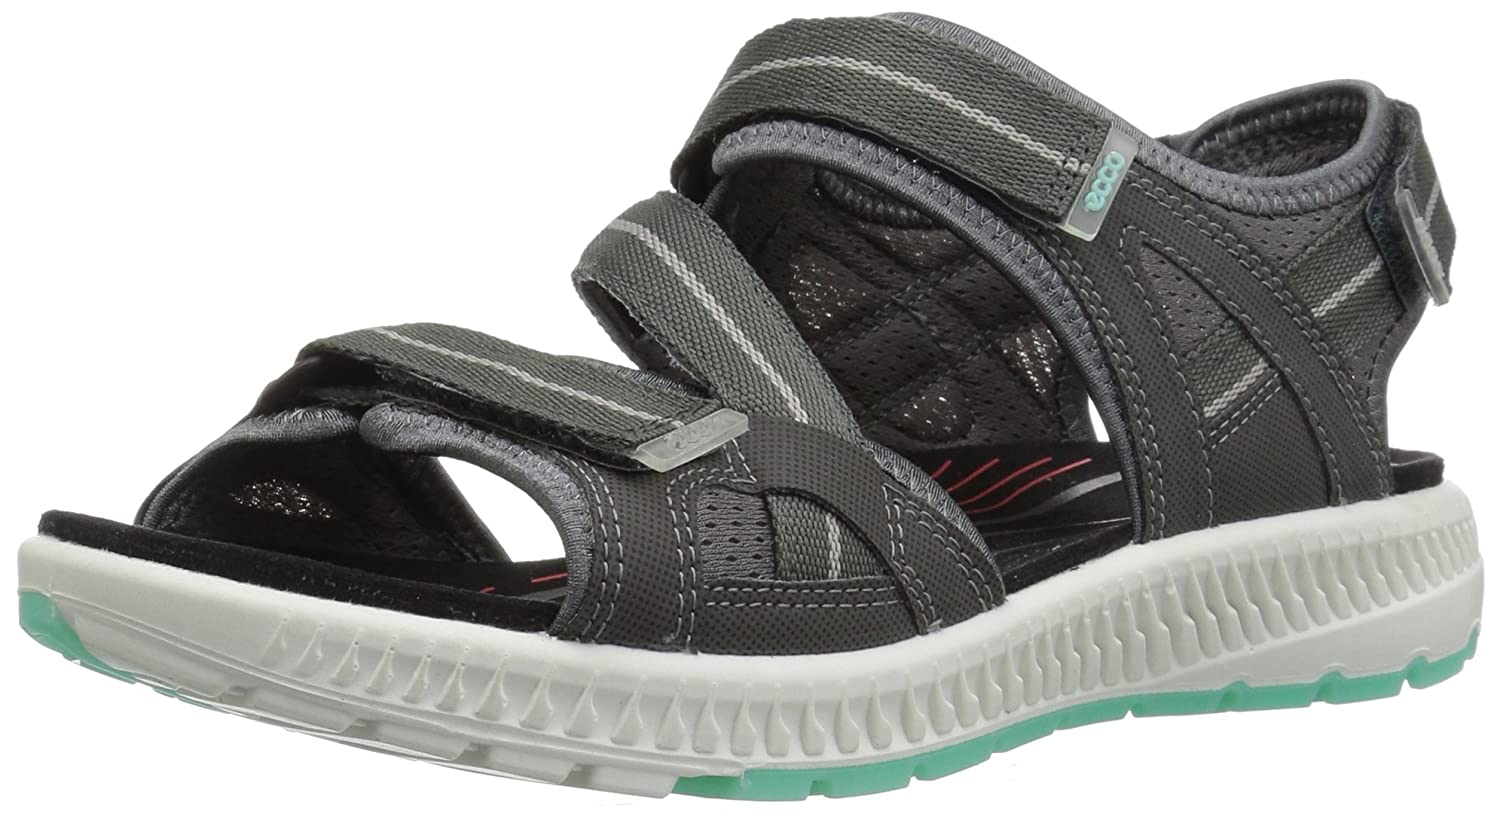 ECCO Women's Terra 3S Athletic Sandal B071HF983N 36 EU/5-5.5 M US|Dark Shadow/Emerald